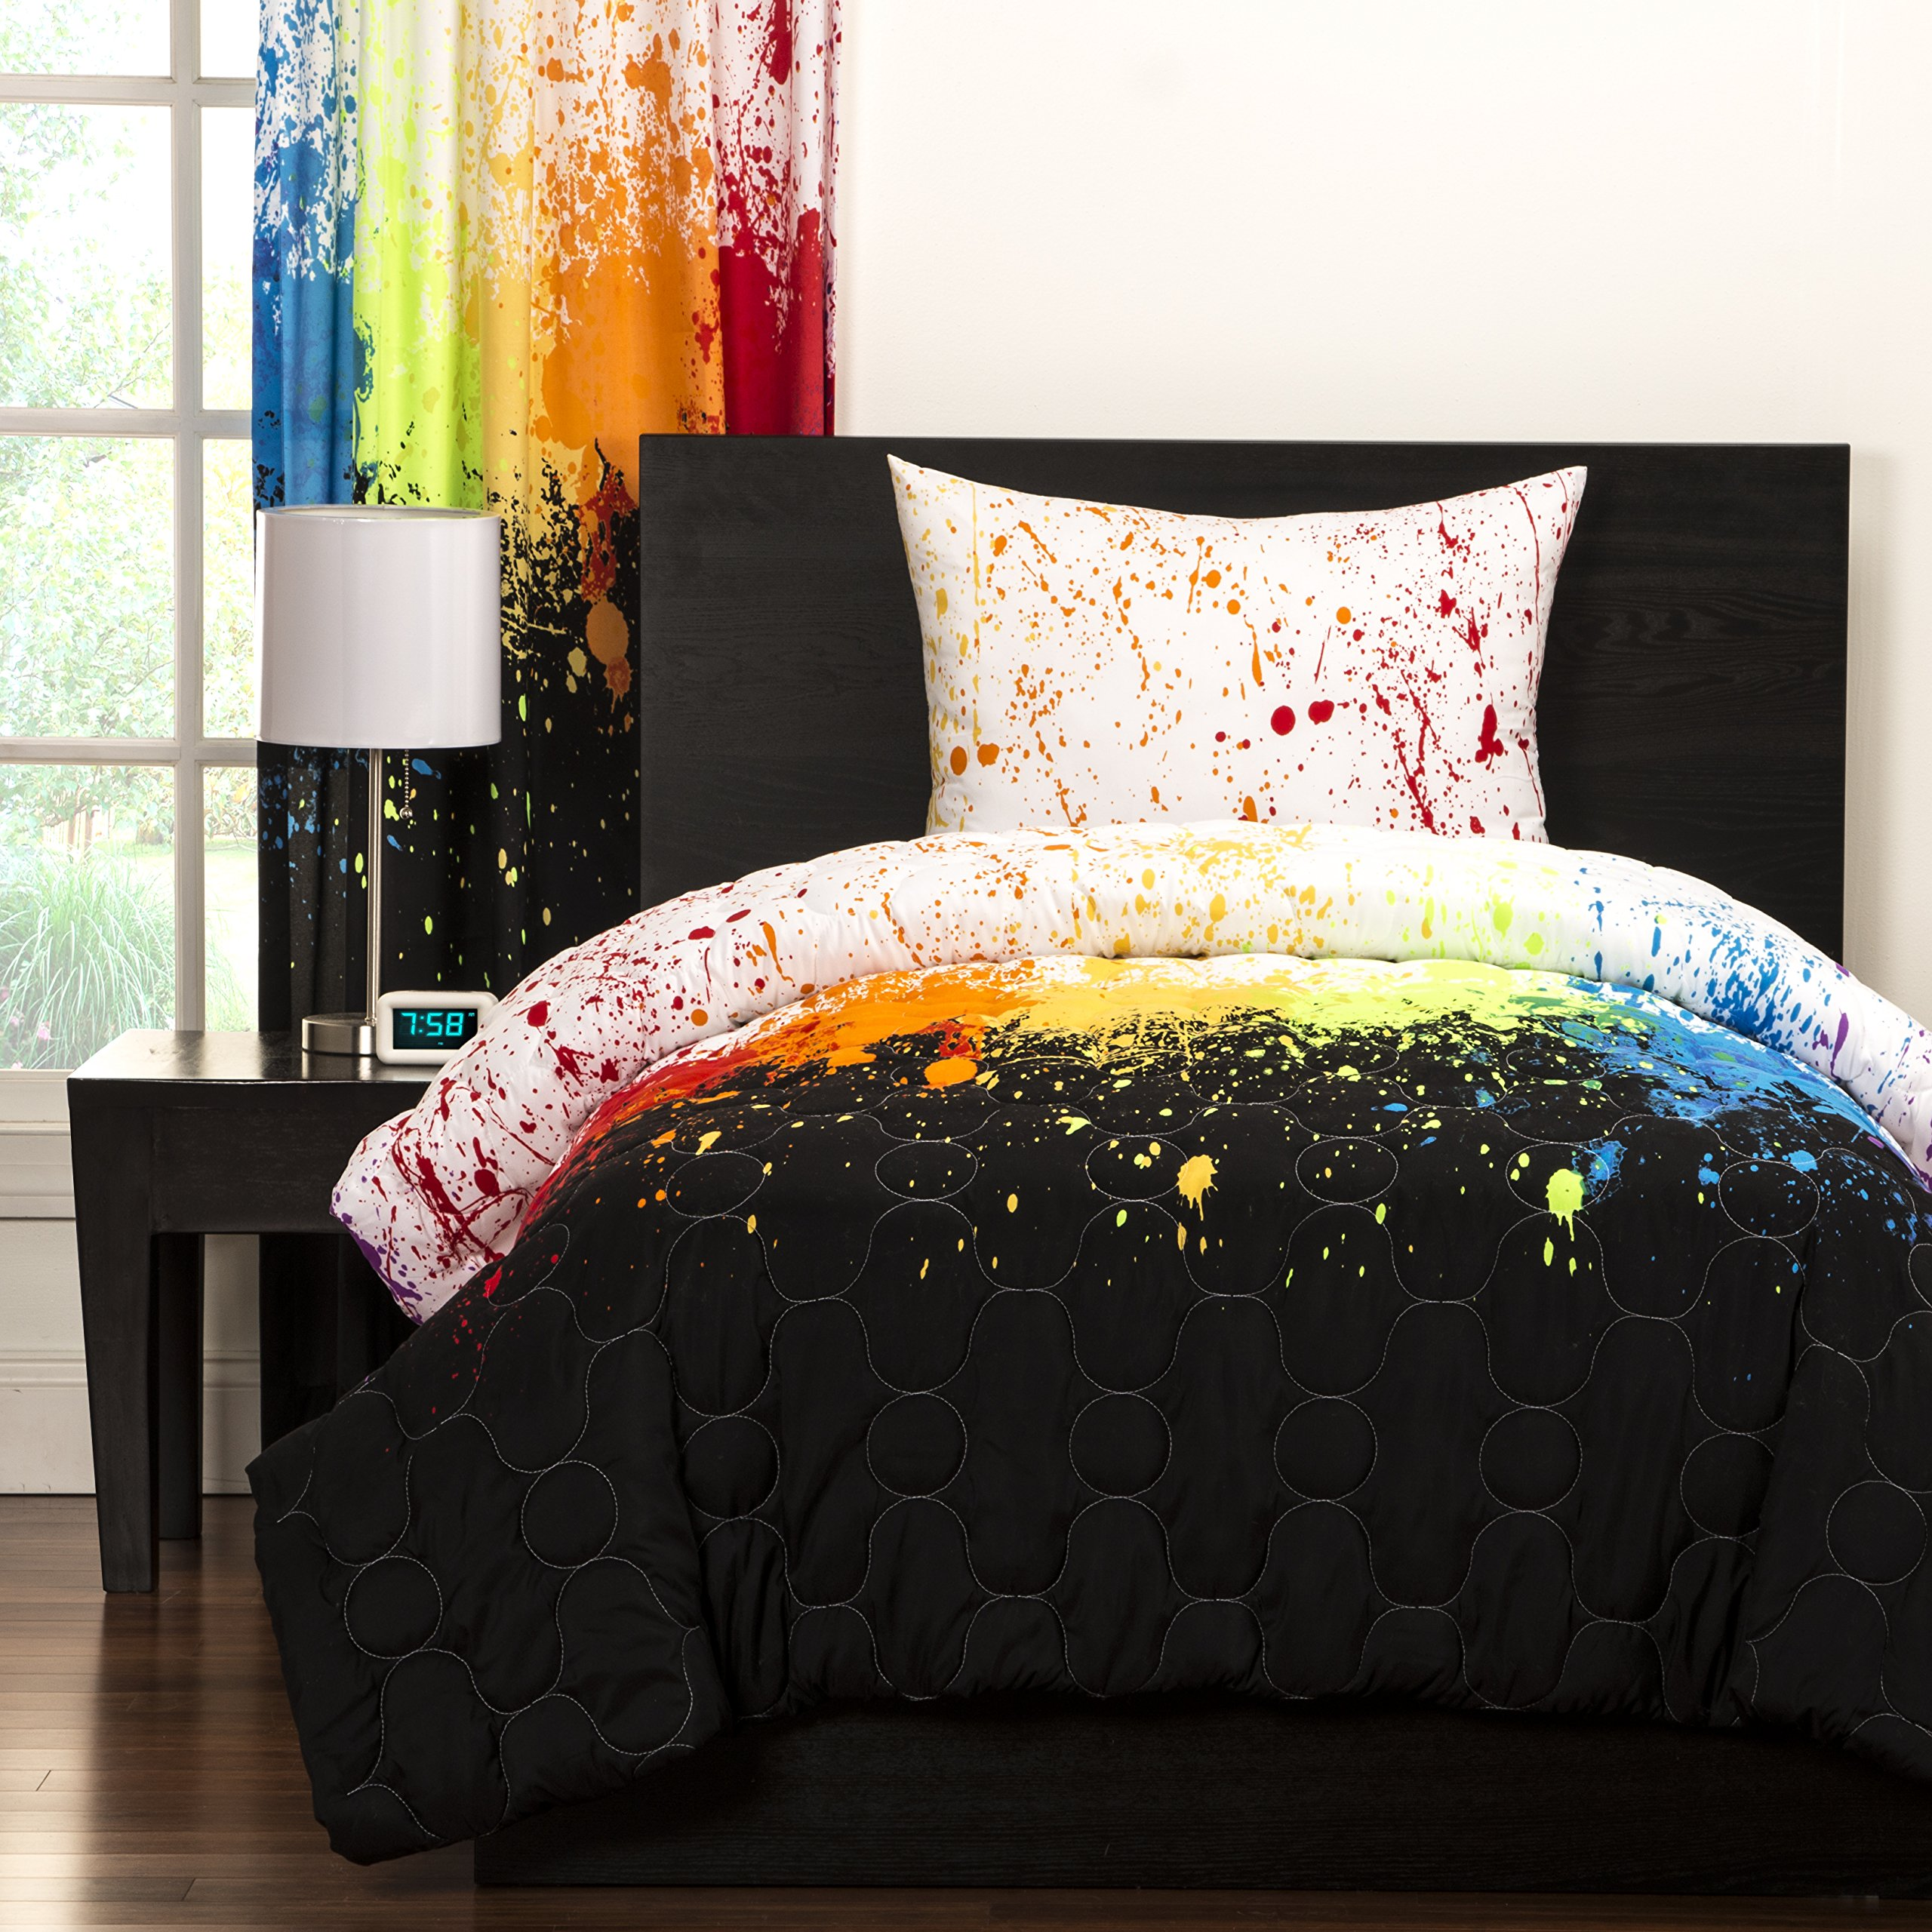 SIS Covers Crayola Cosmic Burst Comforter Set, Twin by SIS Covers (Image #1)